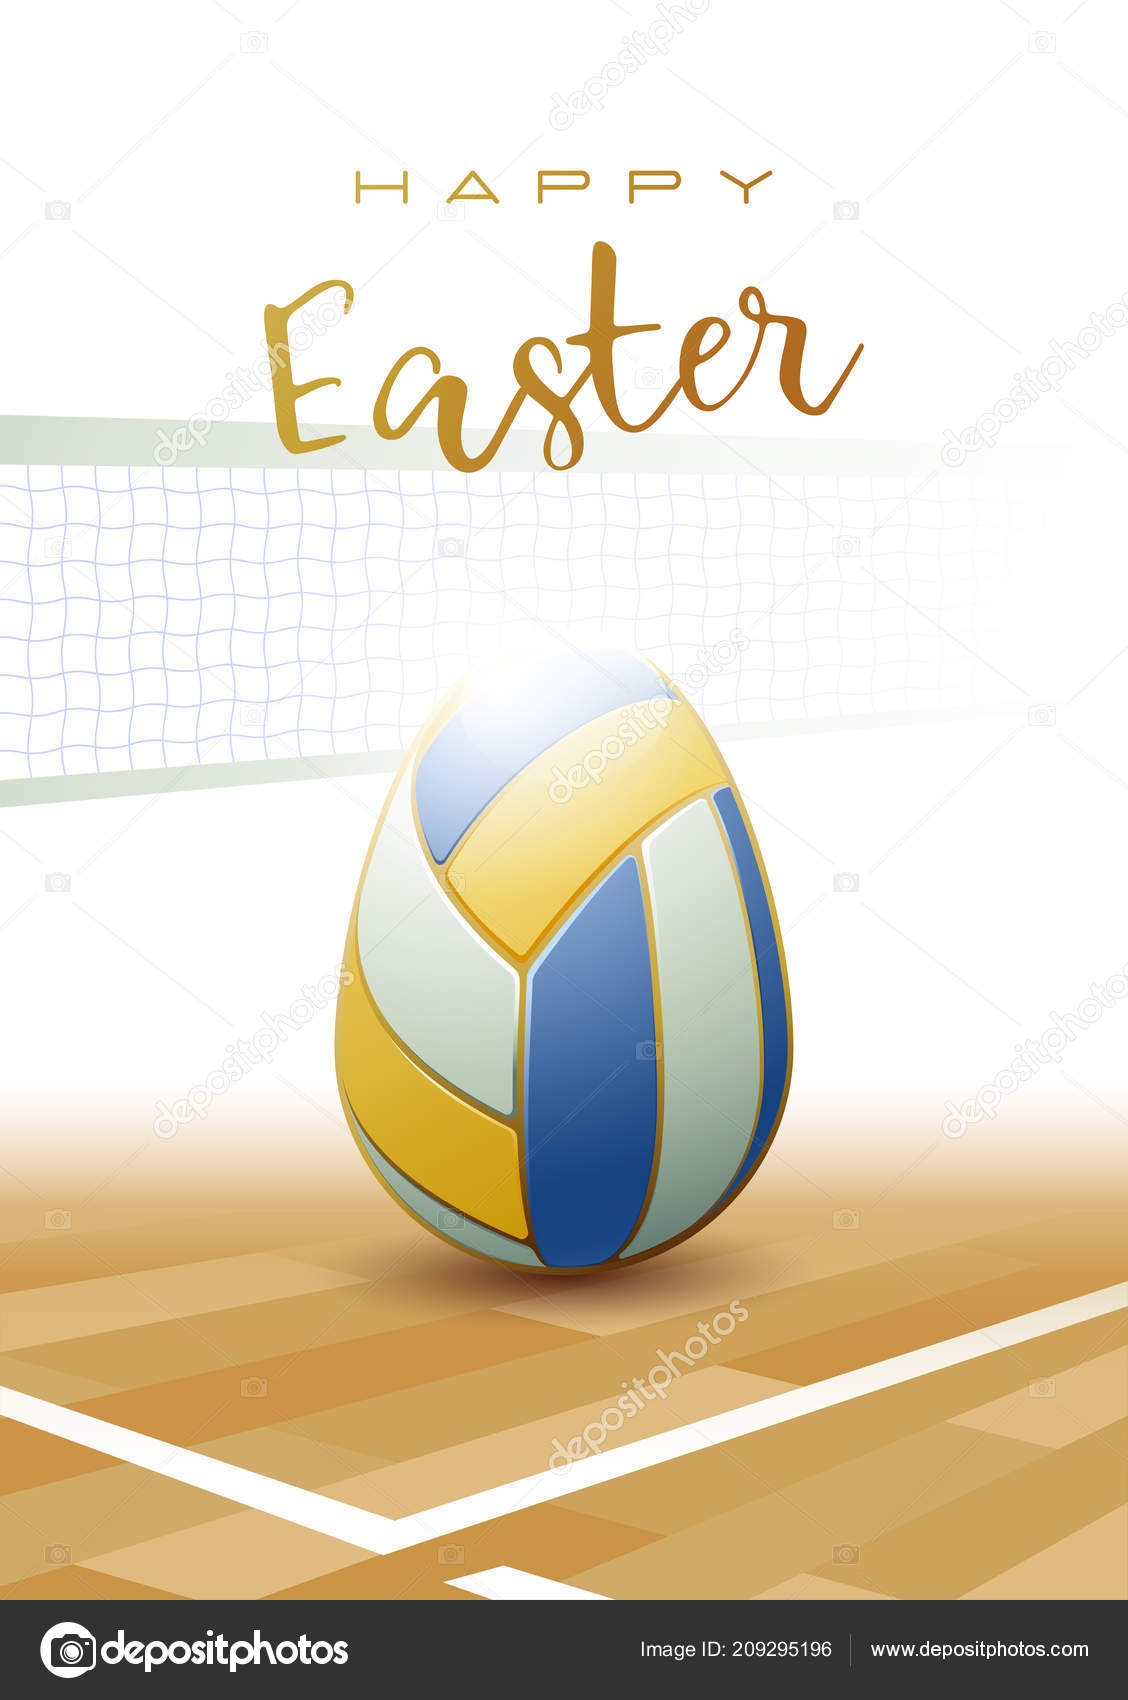 graphic regarding Printable Volleyball titled Printable volleyball Pleased Easter Athletics Greeting Card